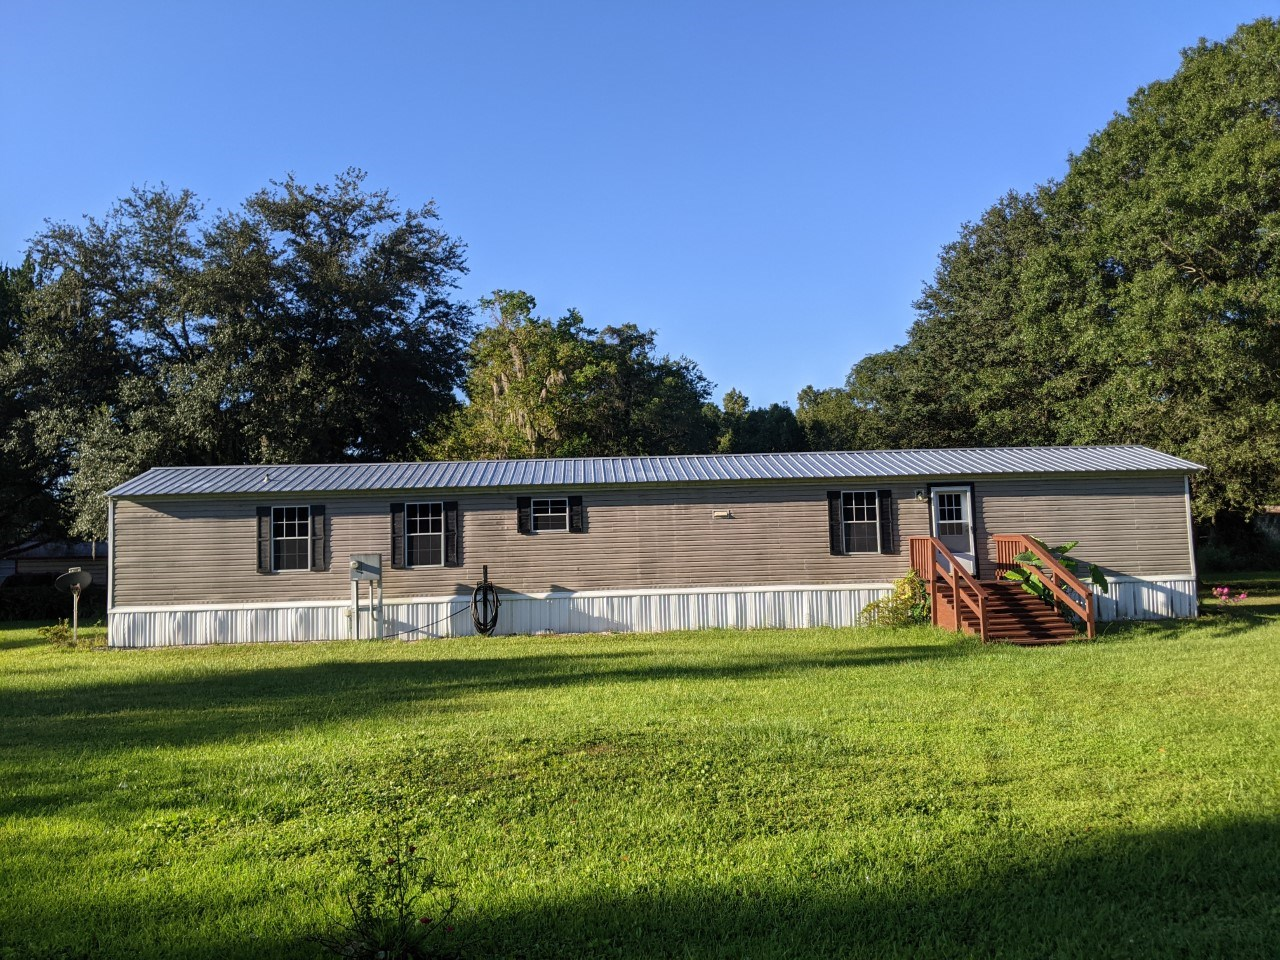 Mobile Home for sale in Starke Florida